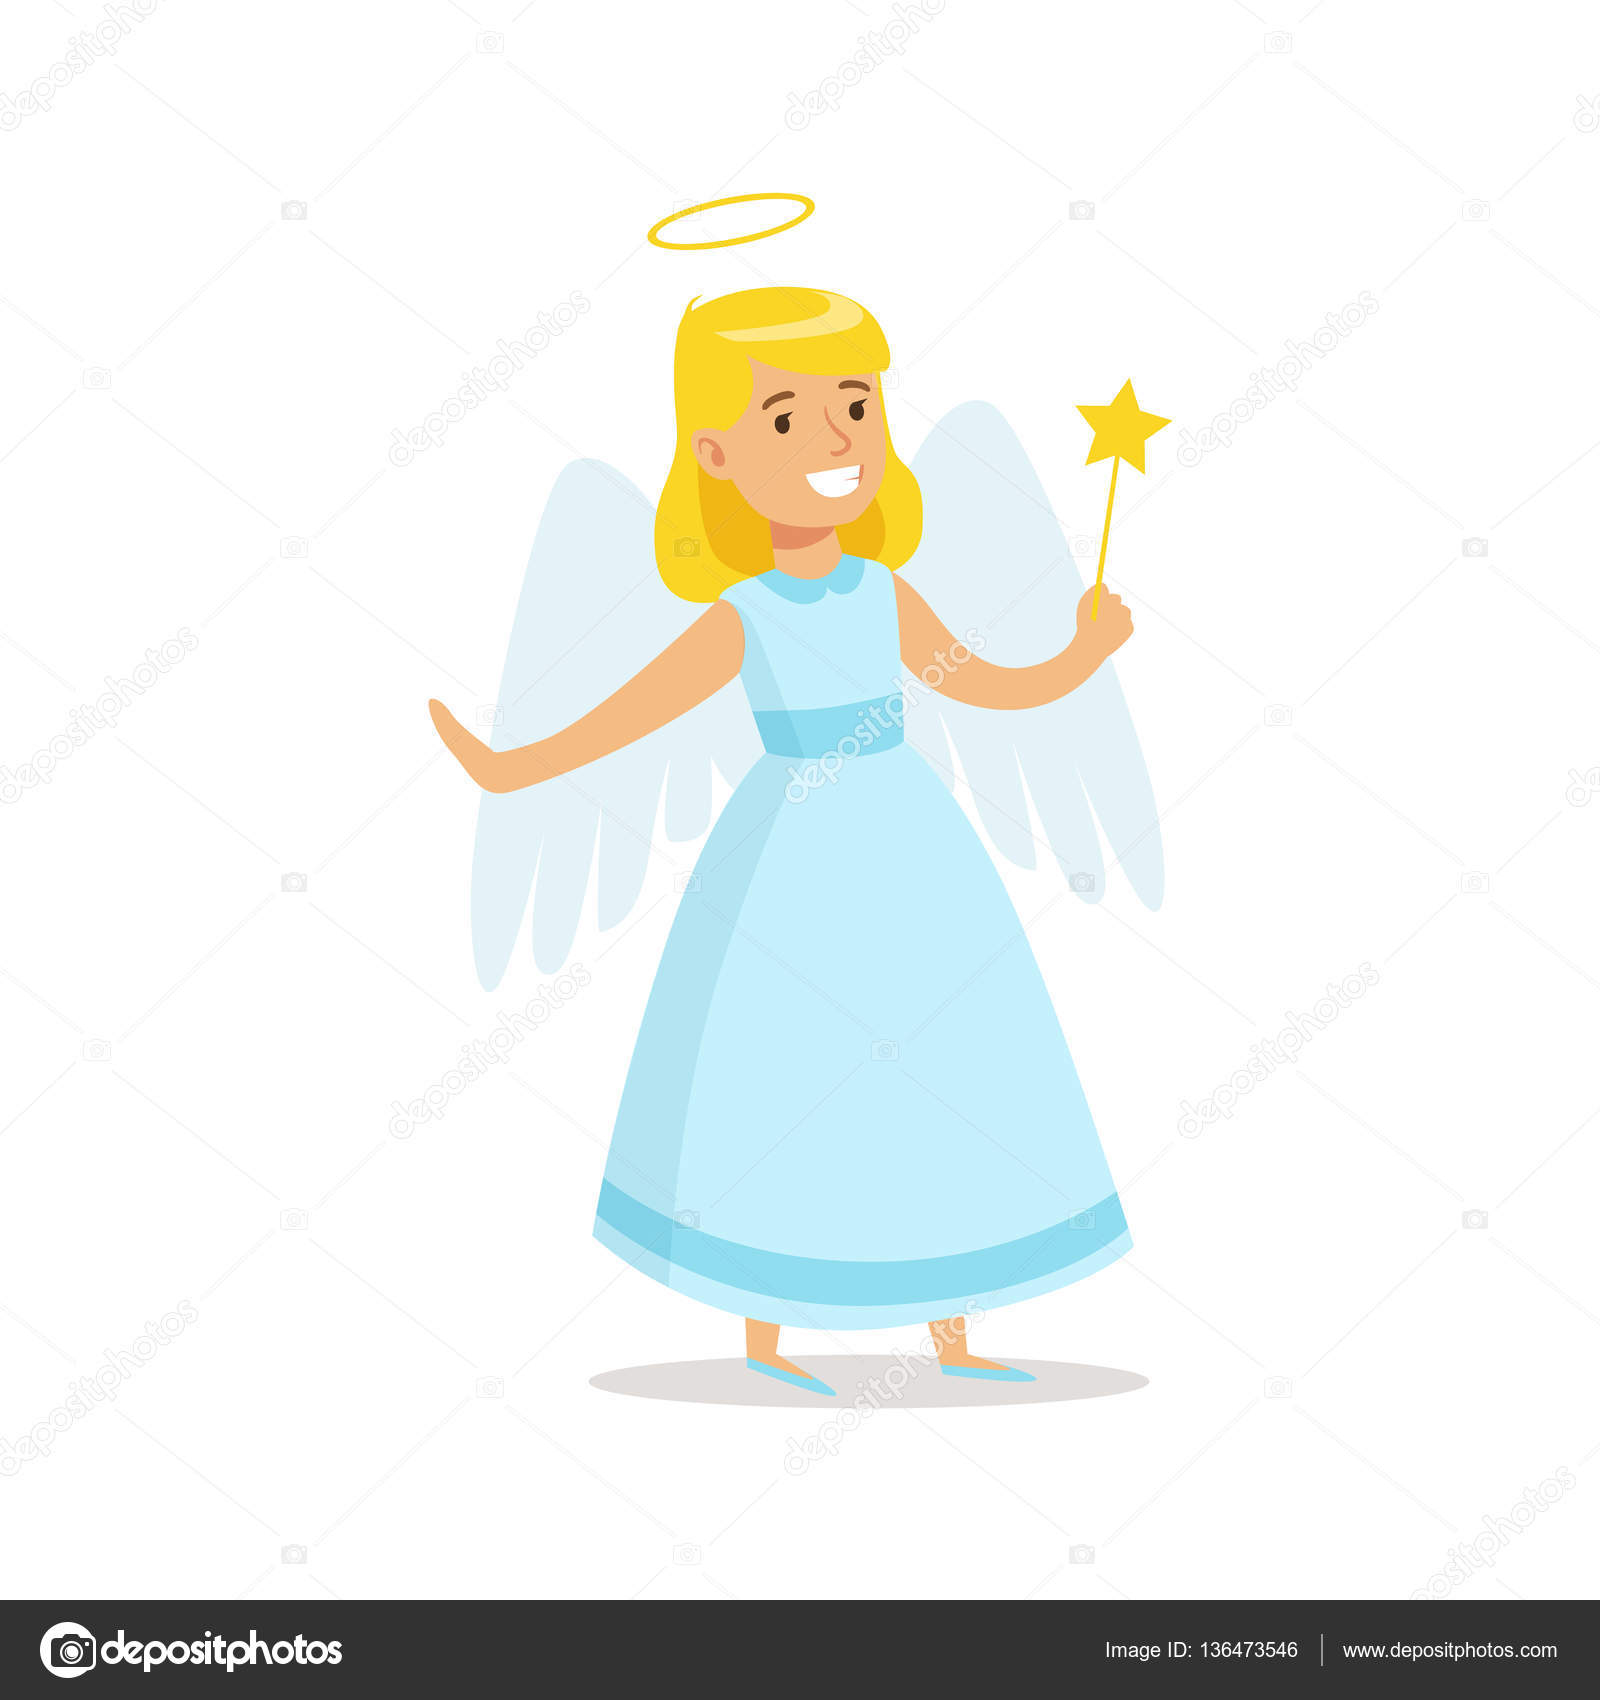 Christmas Carnival Theme Outfit.Girl In Angel Outfit Dressed As Winter Holidays Symbol For